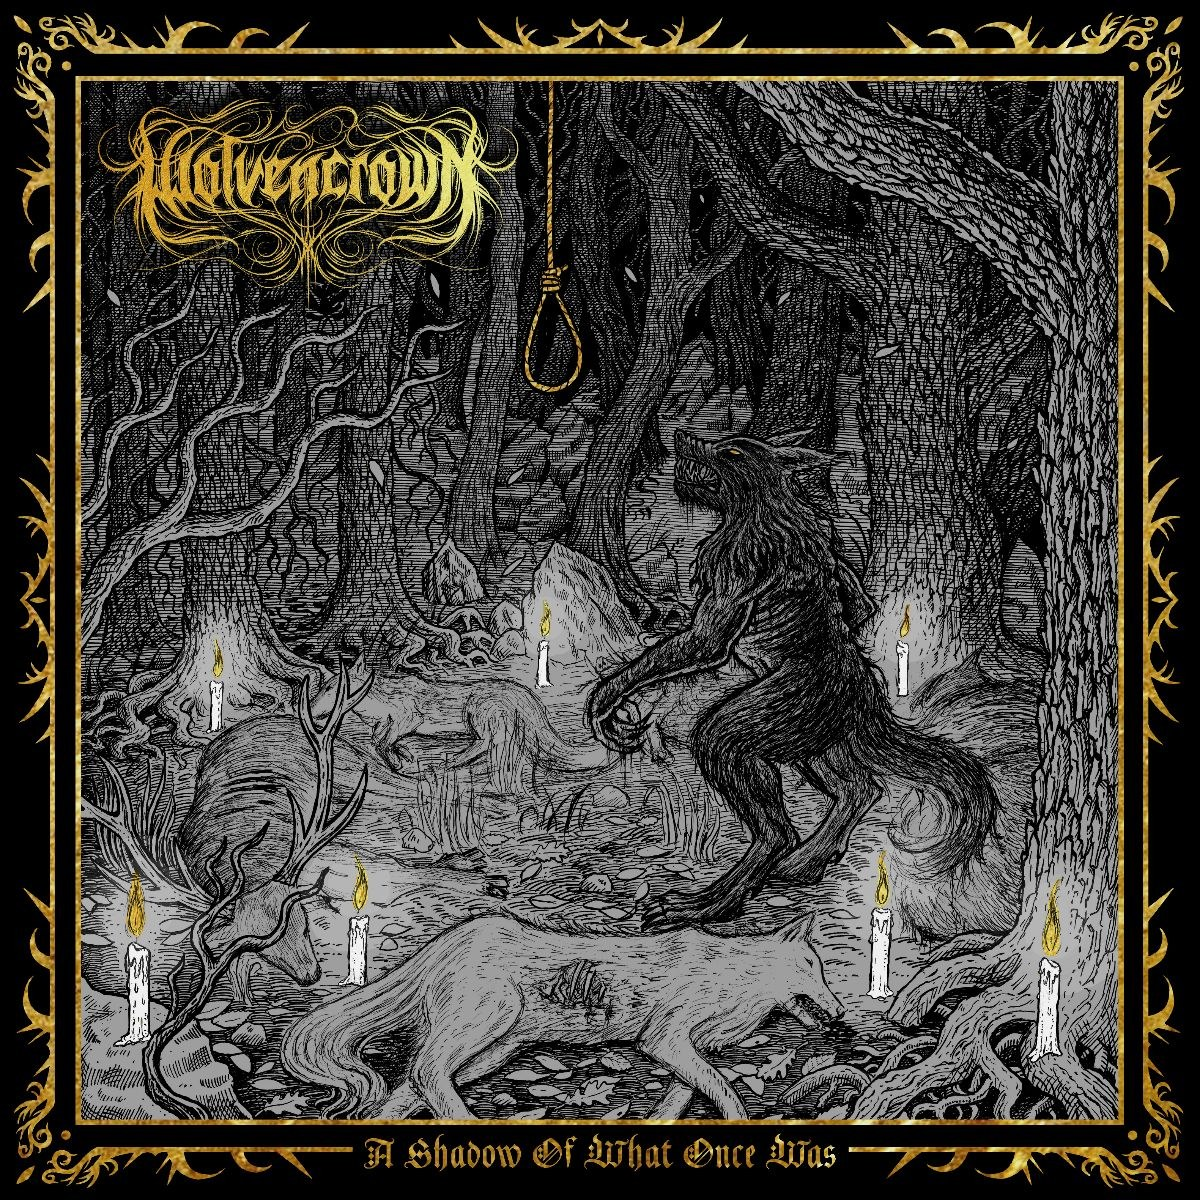 Reviews for Wolvencrown - A Shadow of What Once Was